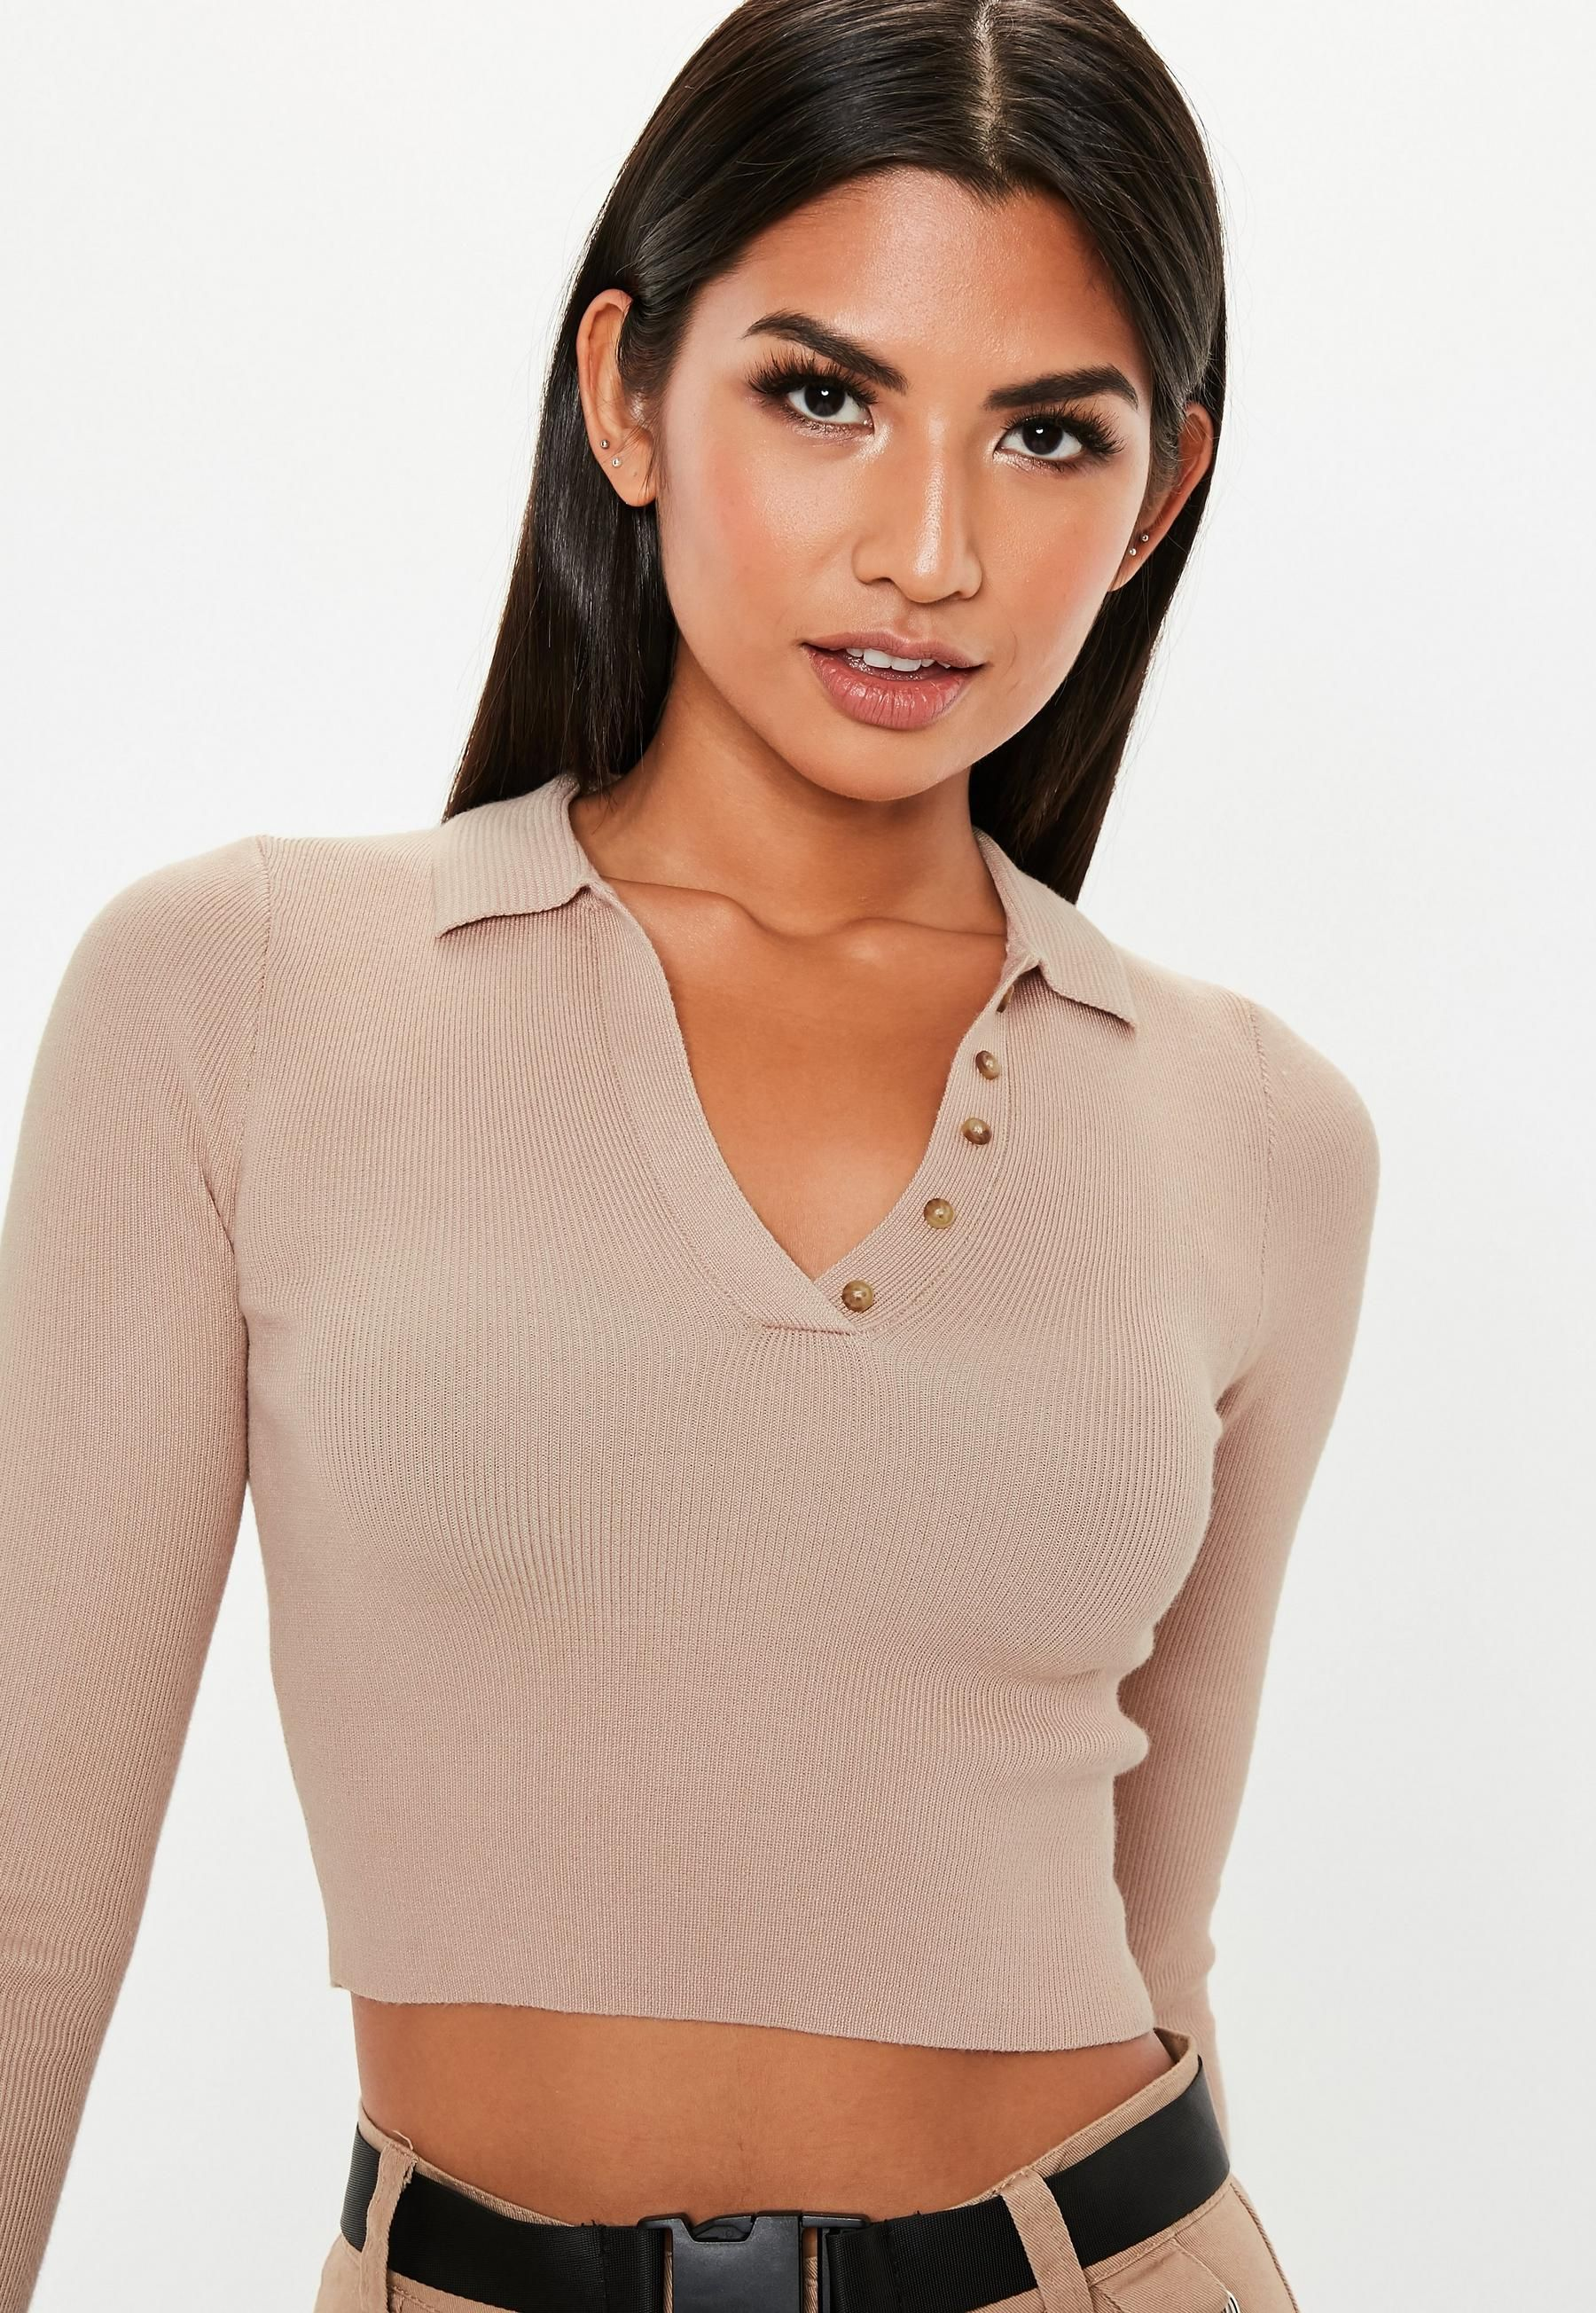 c605e1386b026 Missguided Tan Collared Button Knit Crop Top in 2019